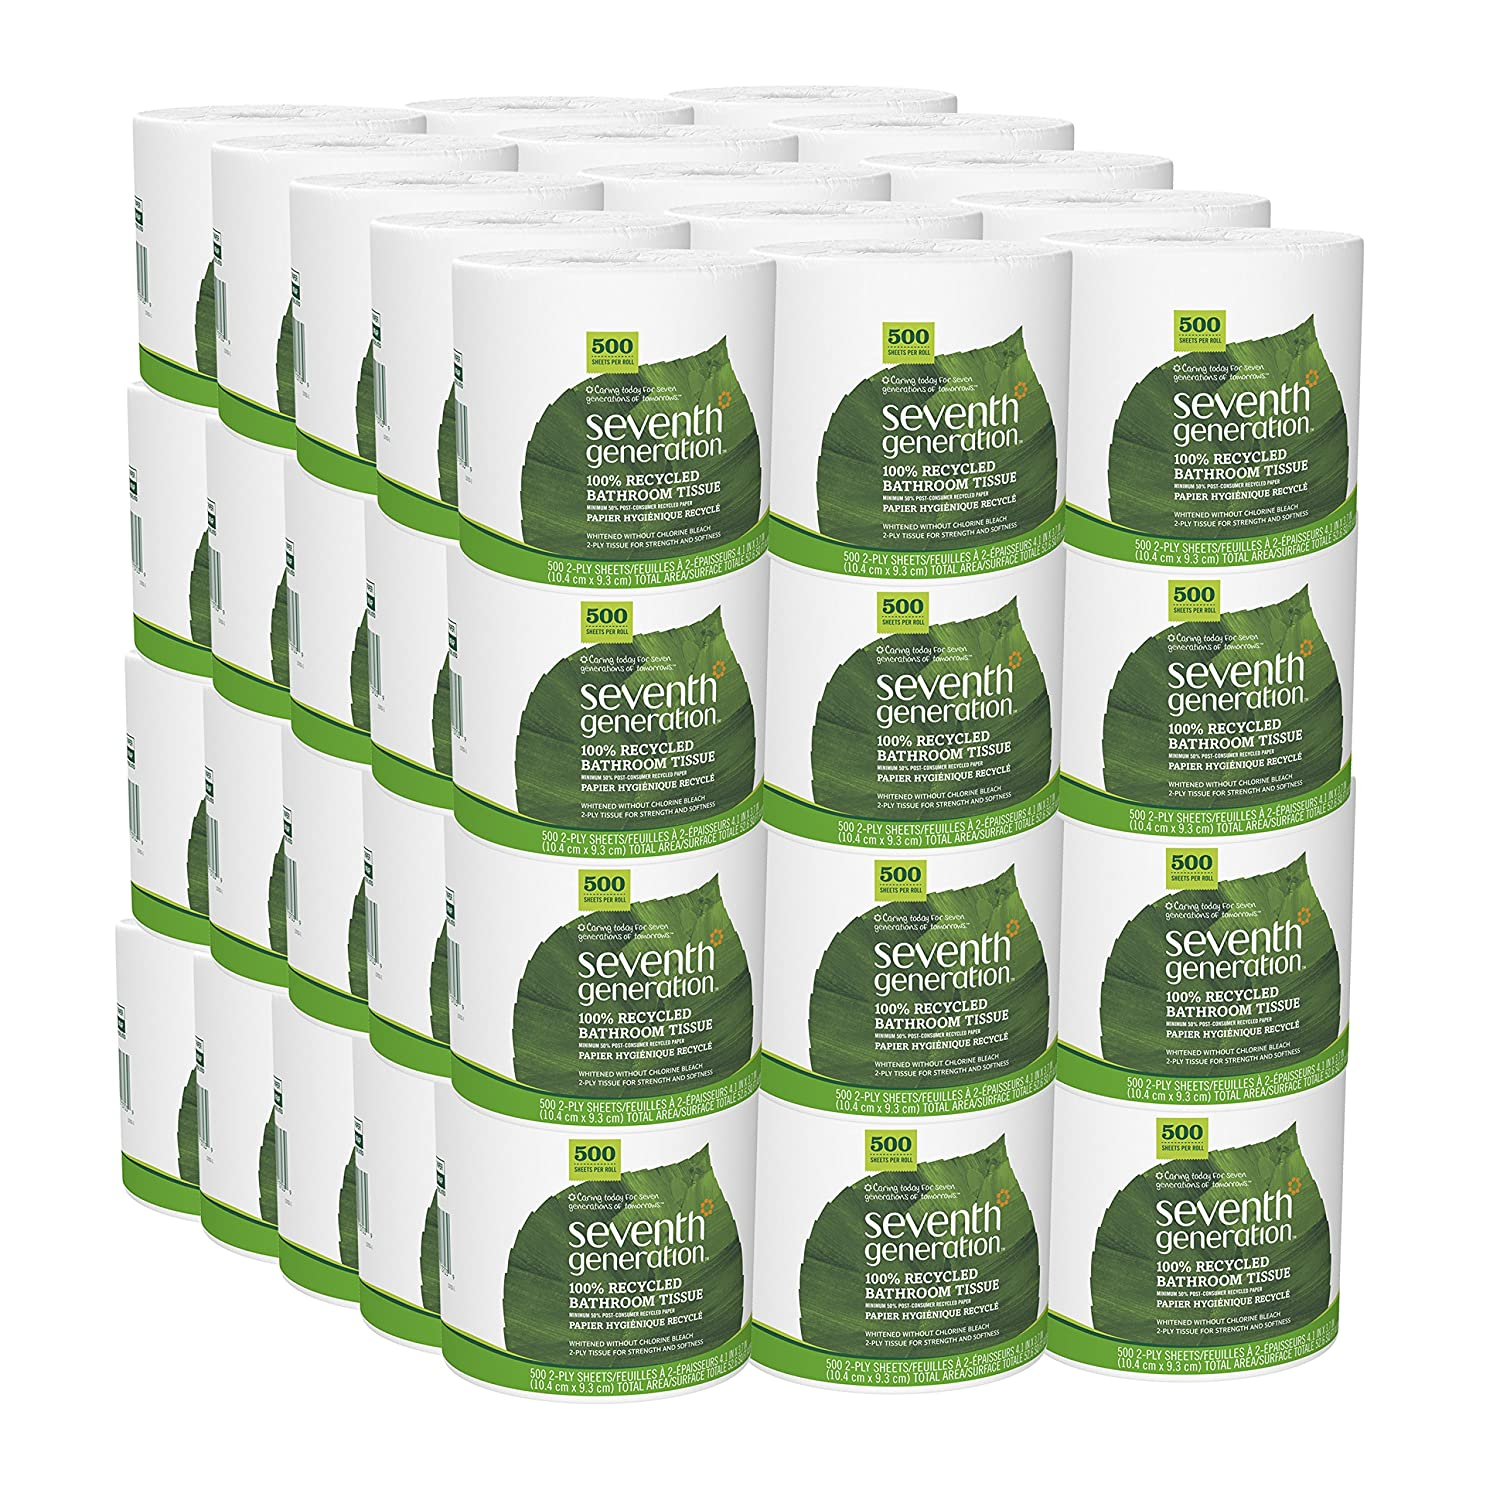 amazoncom seventh generation bathroom tissue 2 ply sheets 500 count pack of 60 health personal care